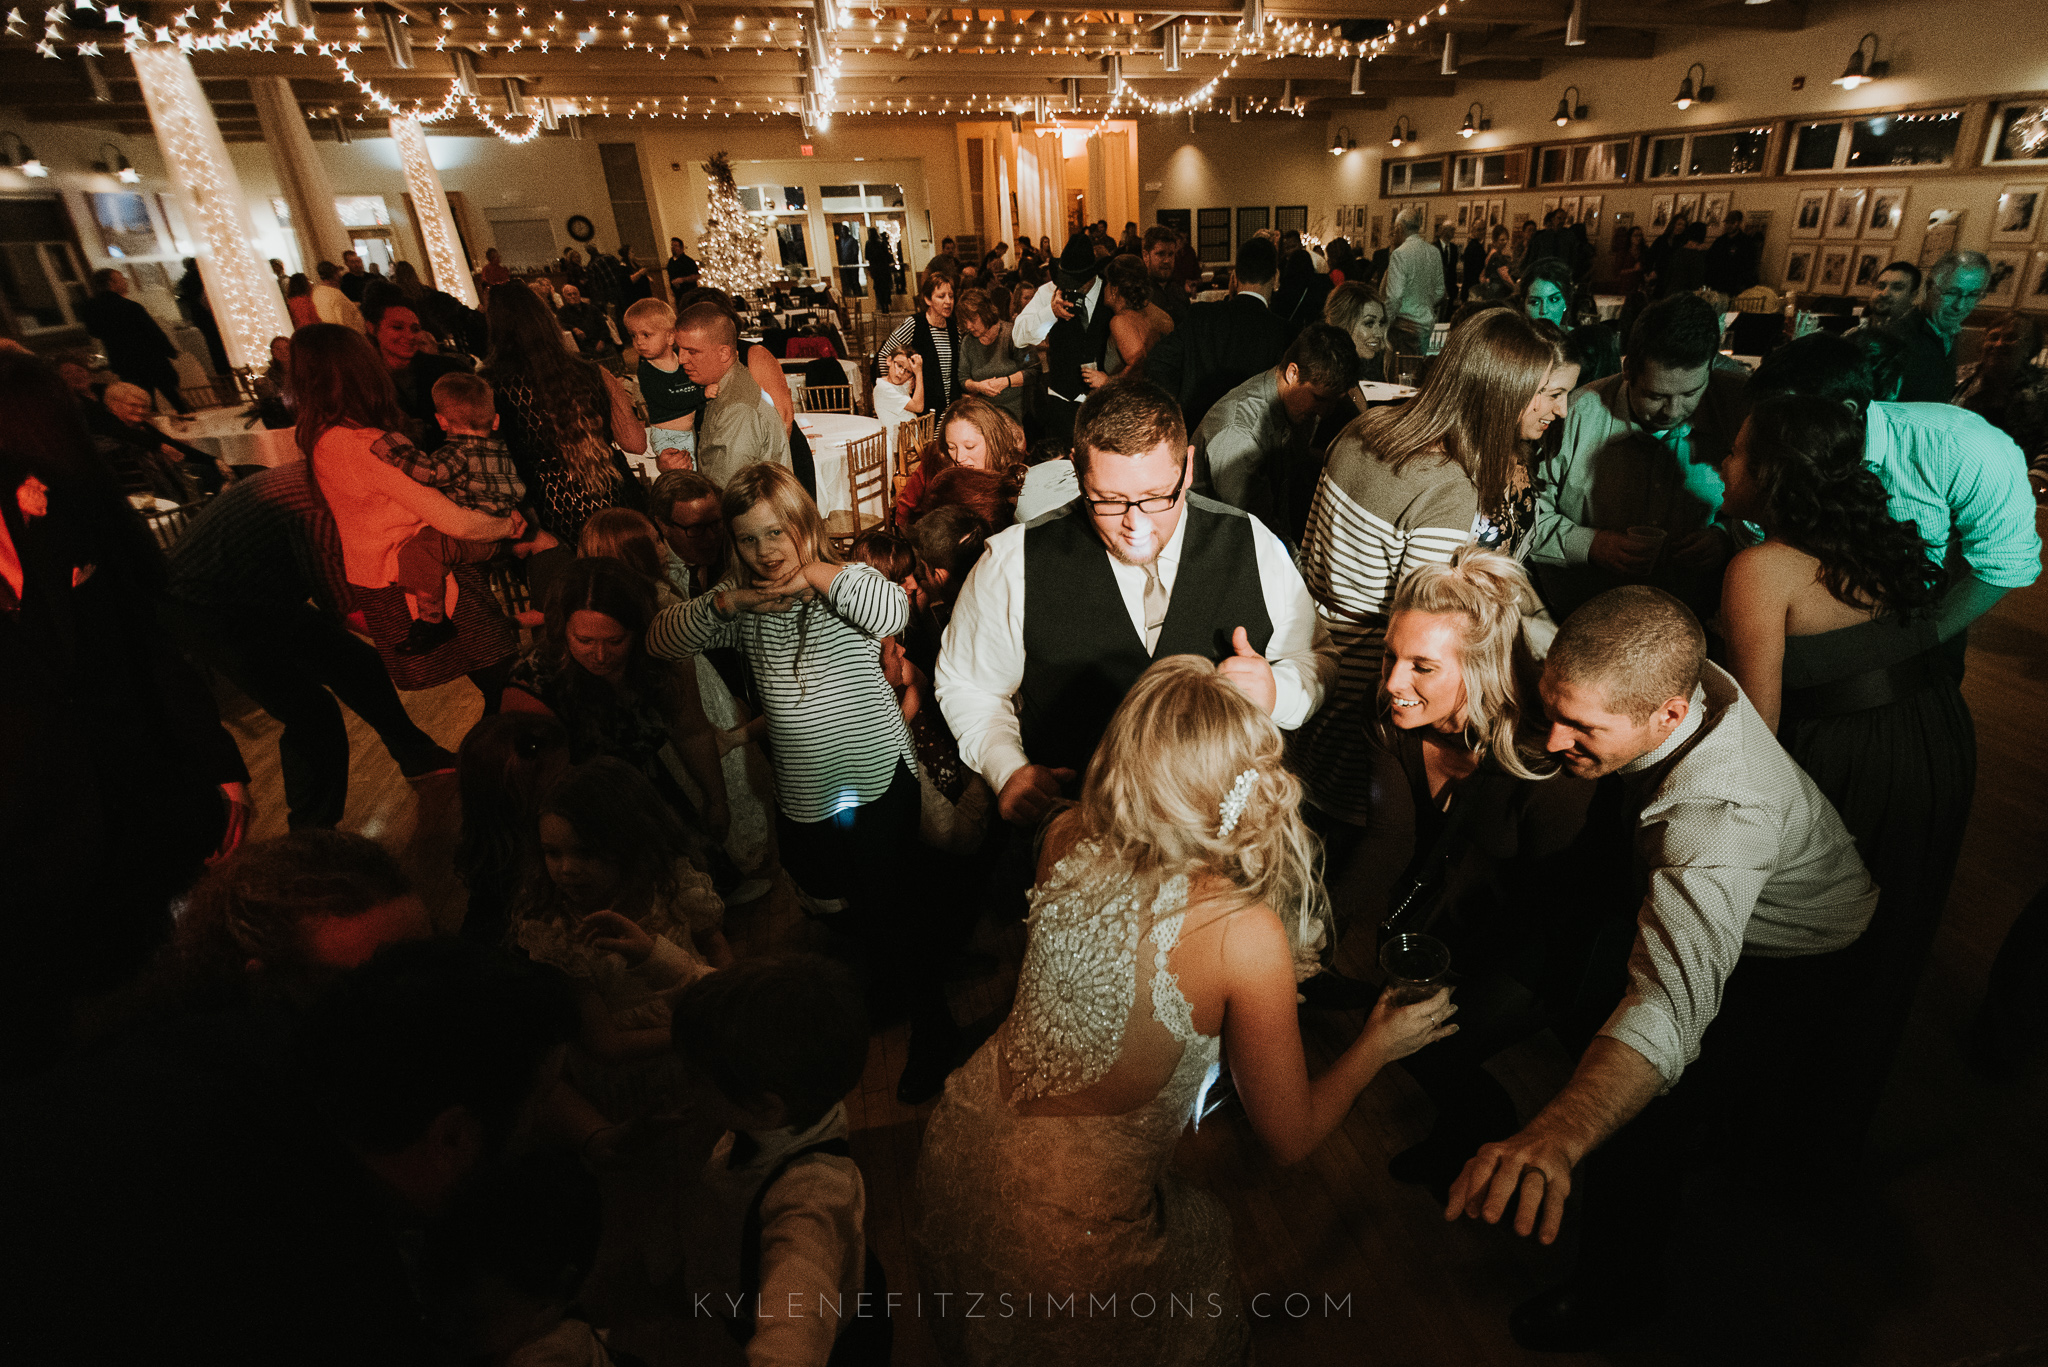 giannonatti-minnesota-winter-wedding-146.jpg